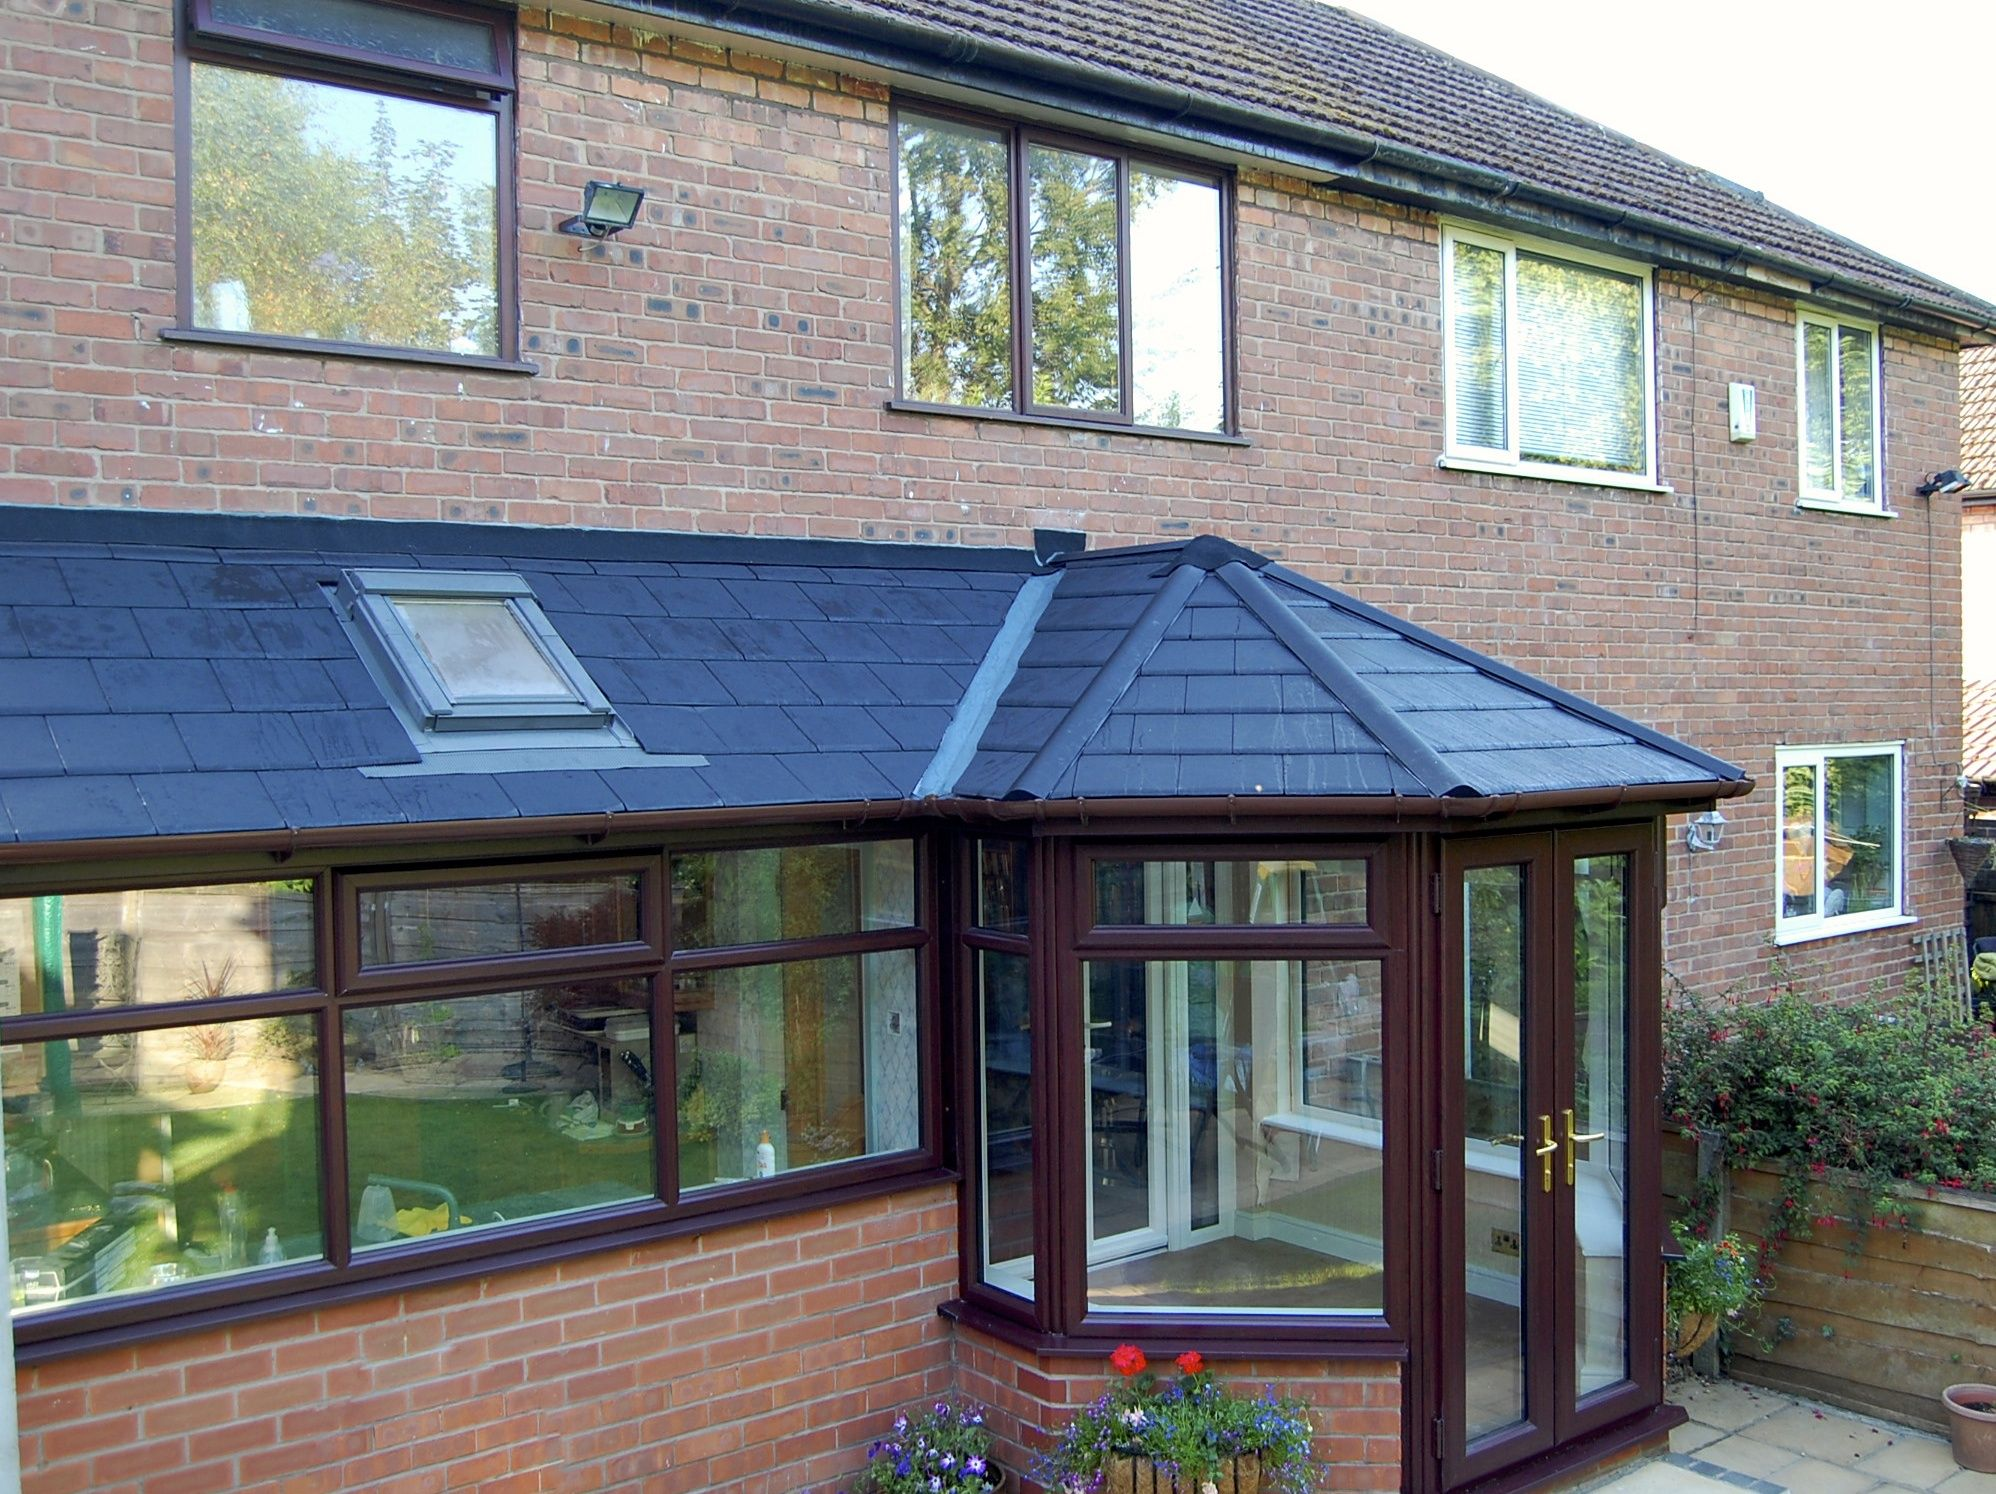 The New Tiled Conservatory Roof An Innovative Design Thermally Efficient All Year Round Www Re Tiled Conservatory Roof Conservatory Roof House Extensions